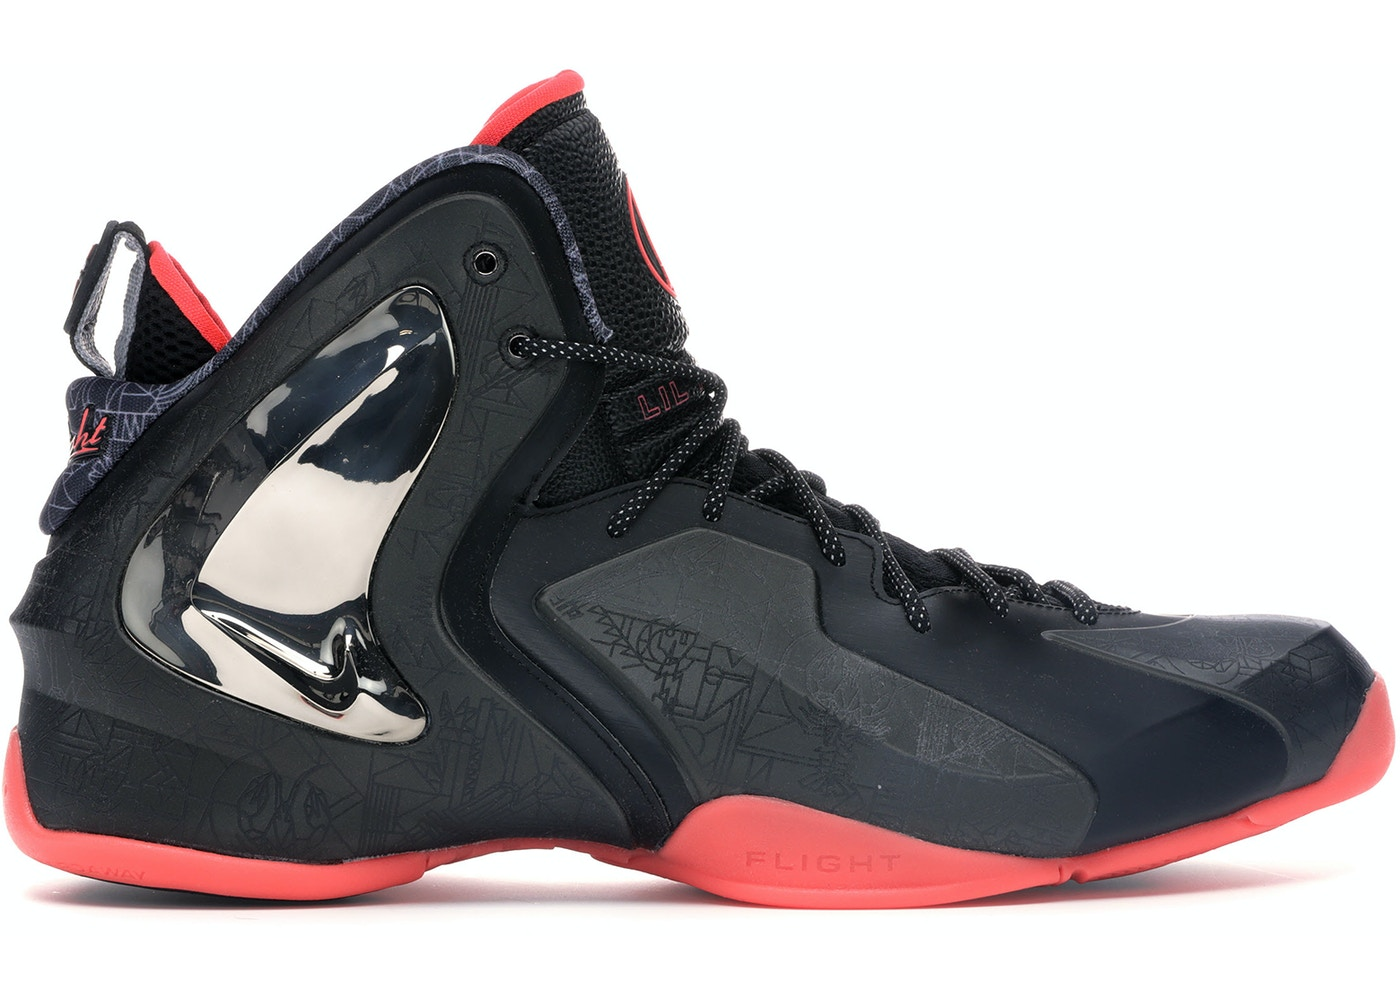 check out de35f d1925 Nike Basketball Penny Shoes - Release Date